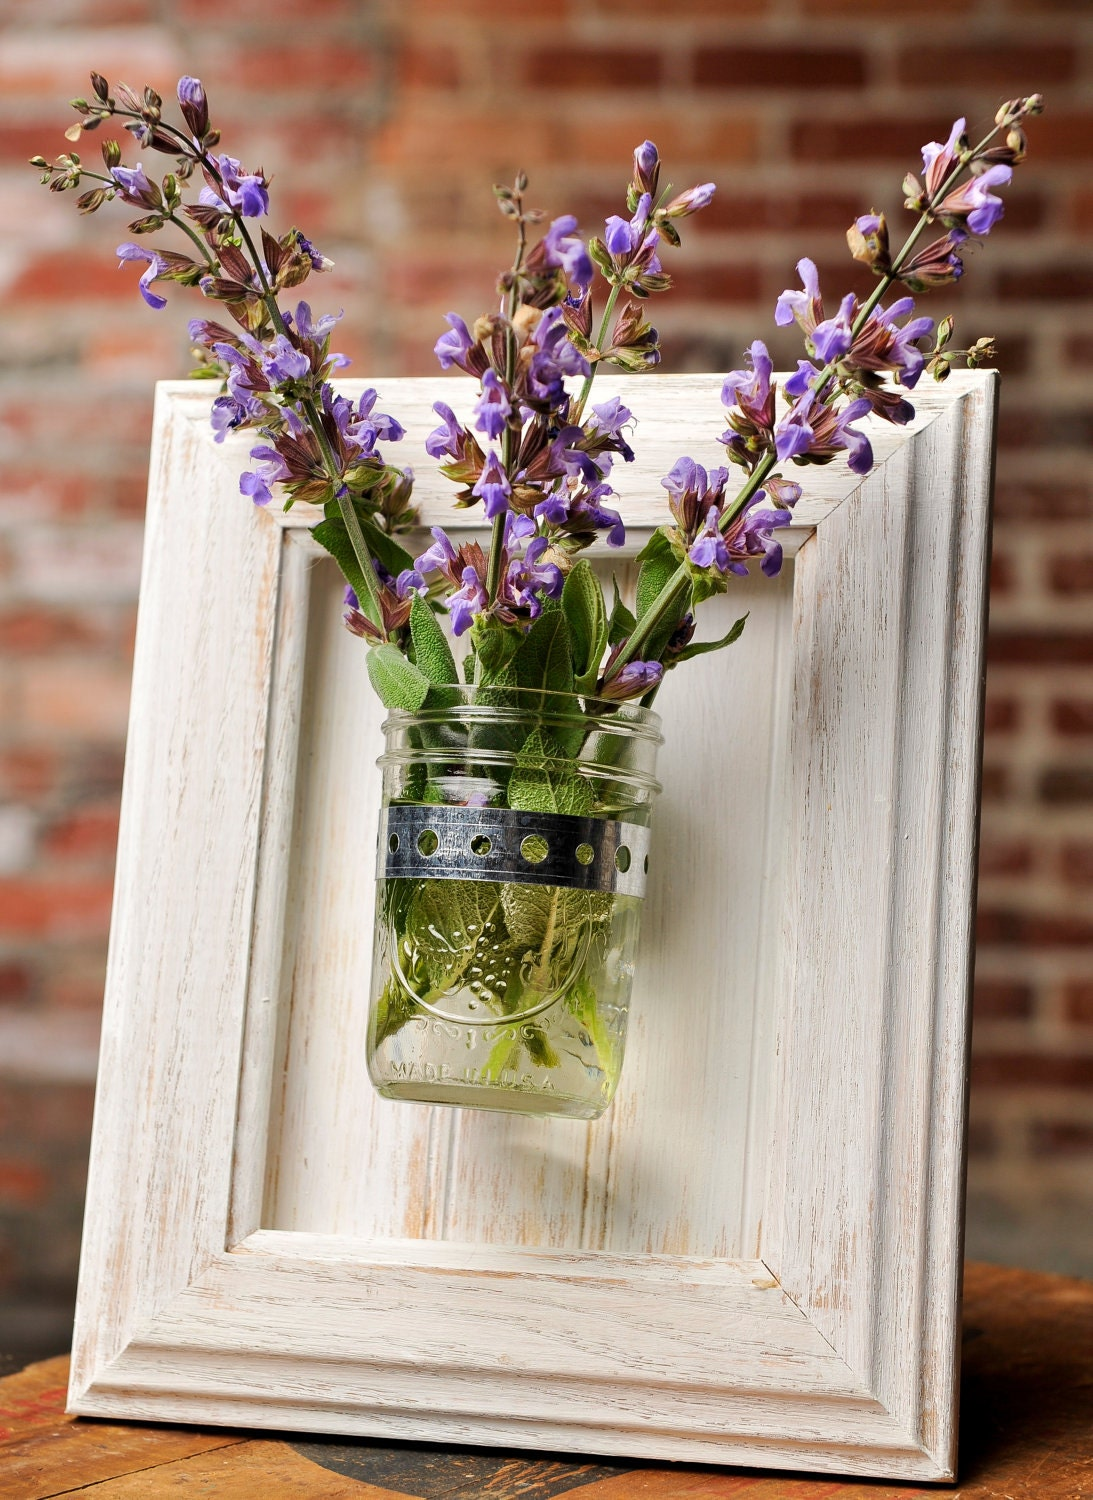 Wall Sconces For Plants : Framed Mason Jar Wall Sconce Rustic White Flower/ Plant/